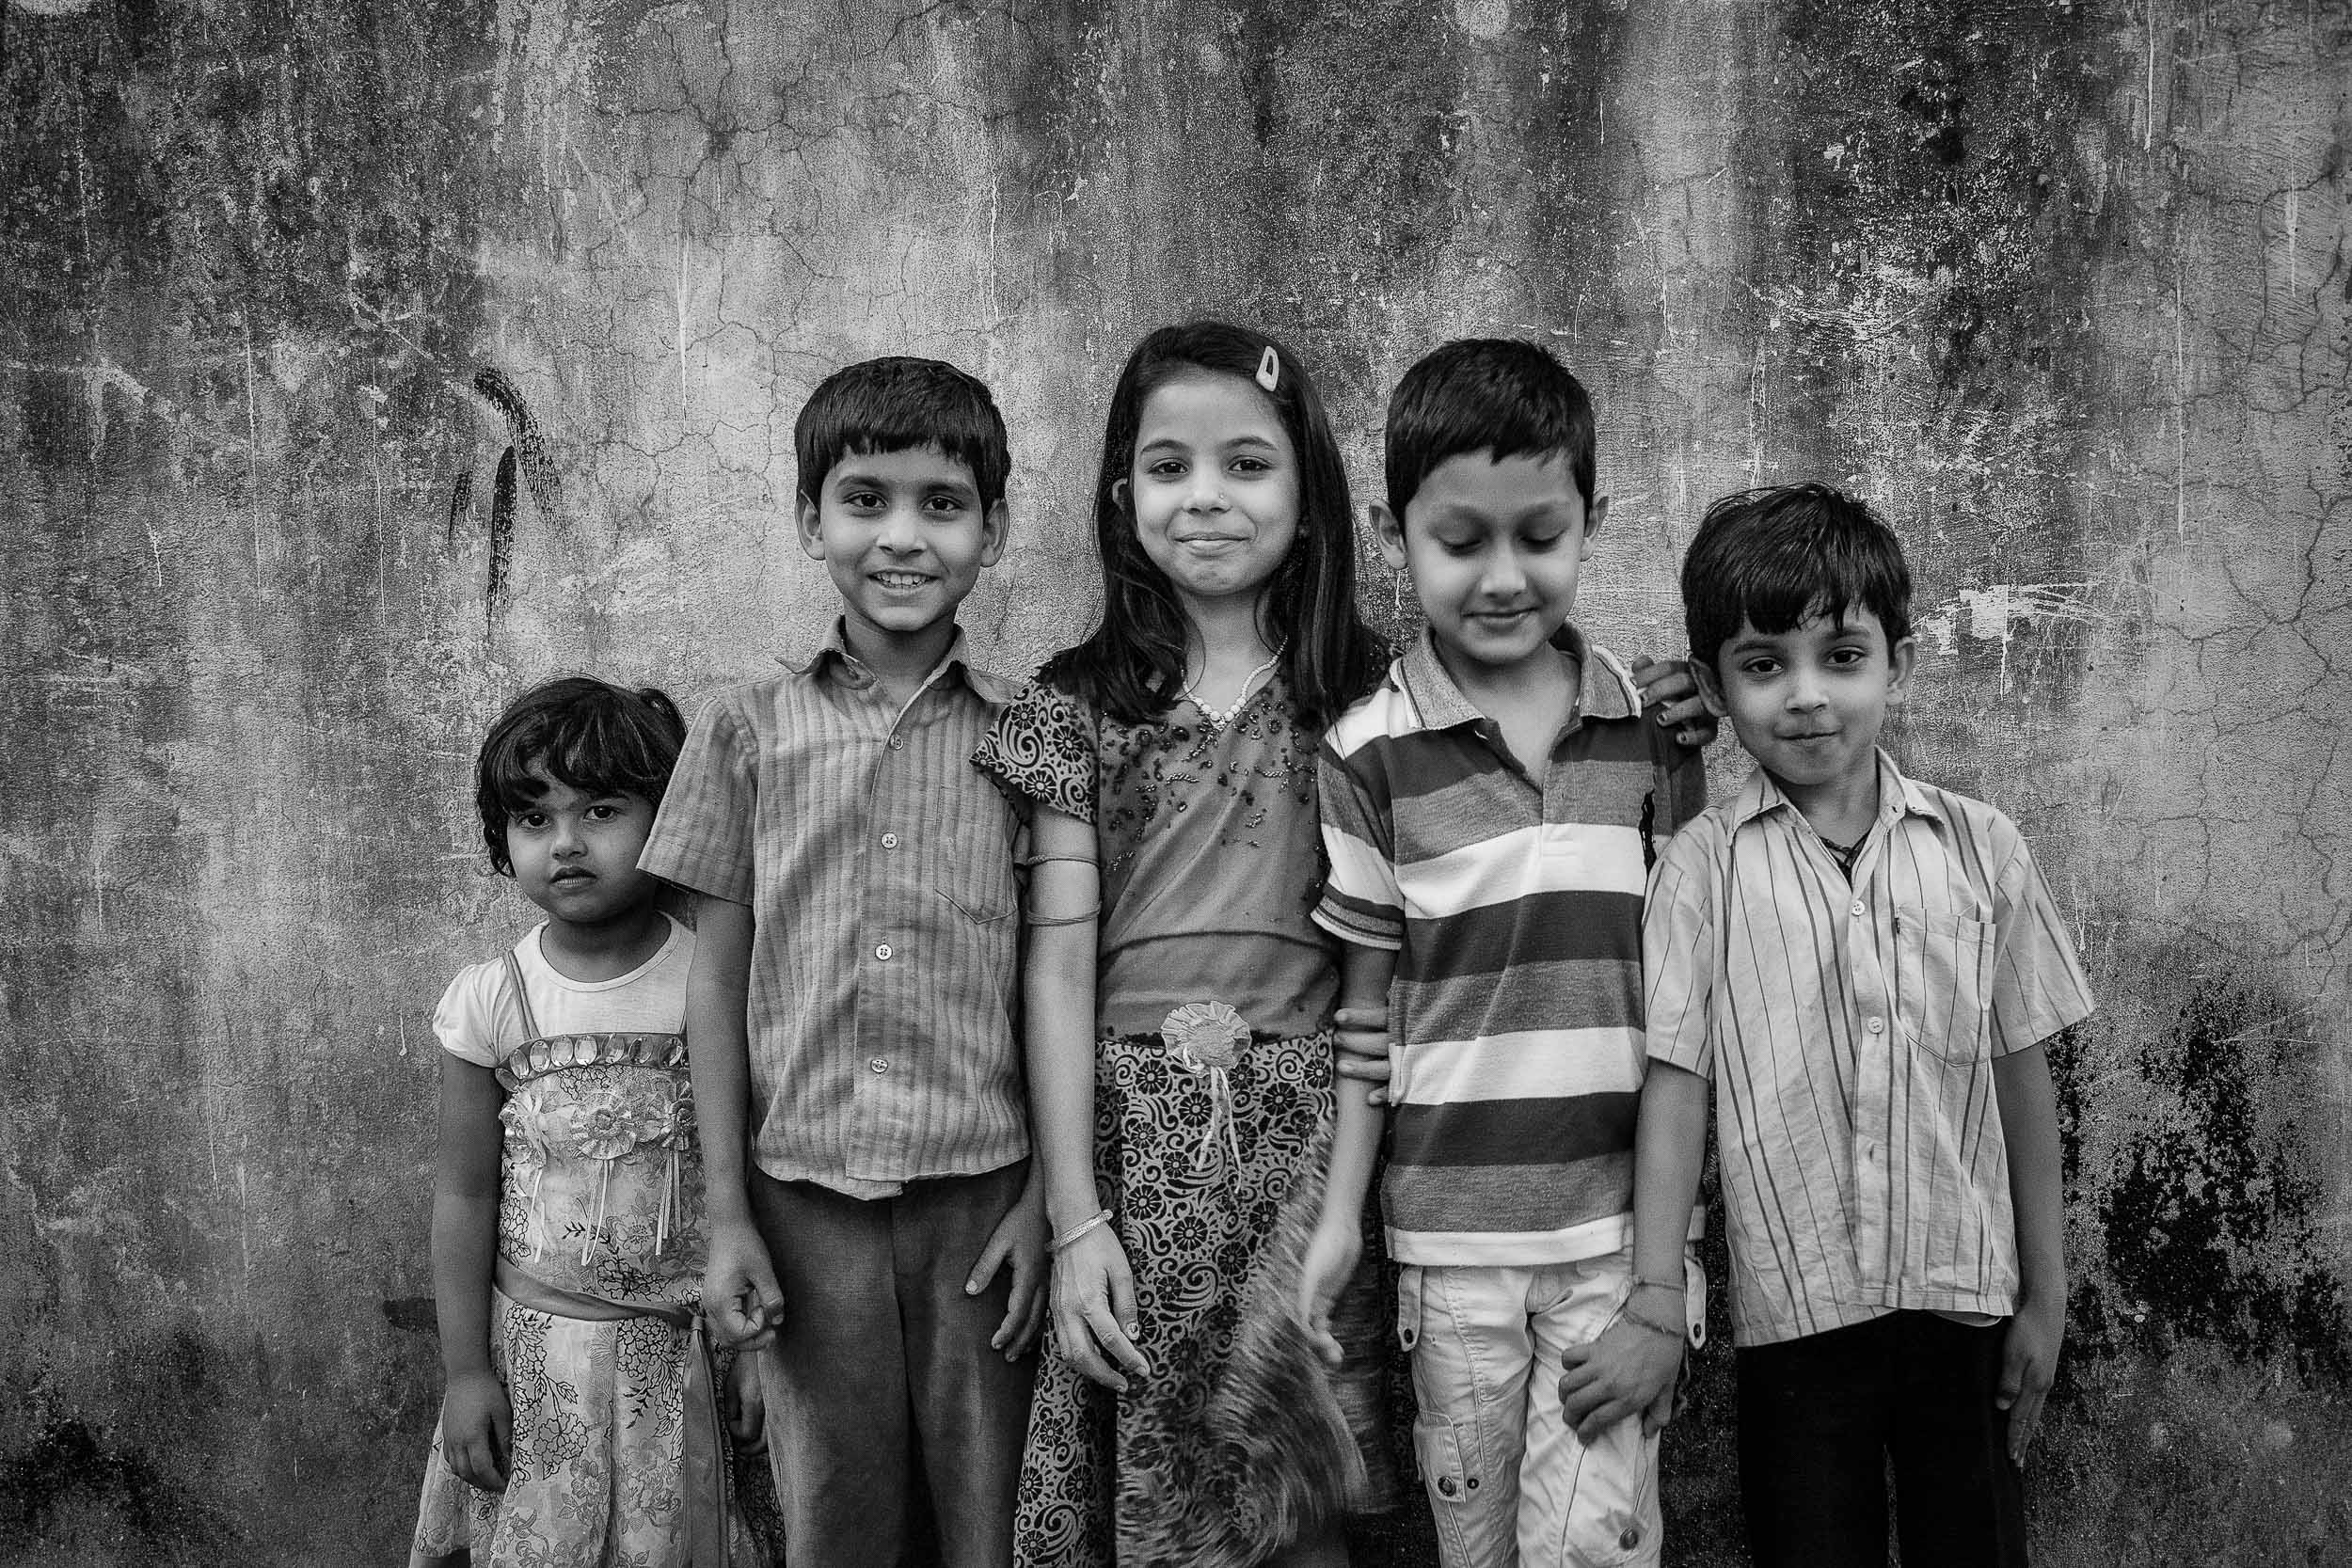 A    group of kids    pose for a photo in an    alleyway    in    Kolkata, India   .